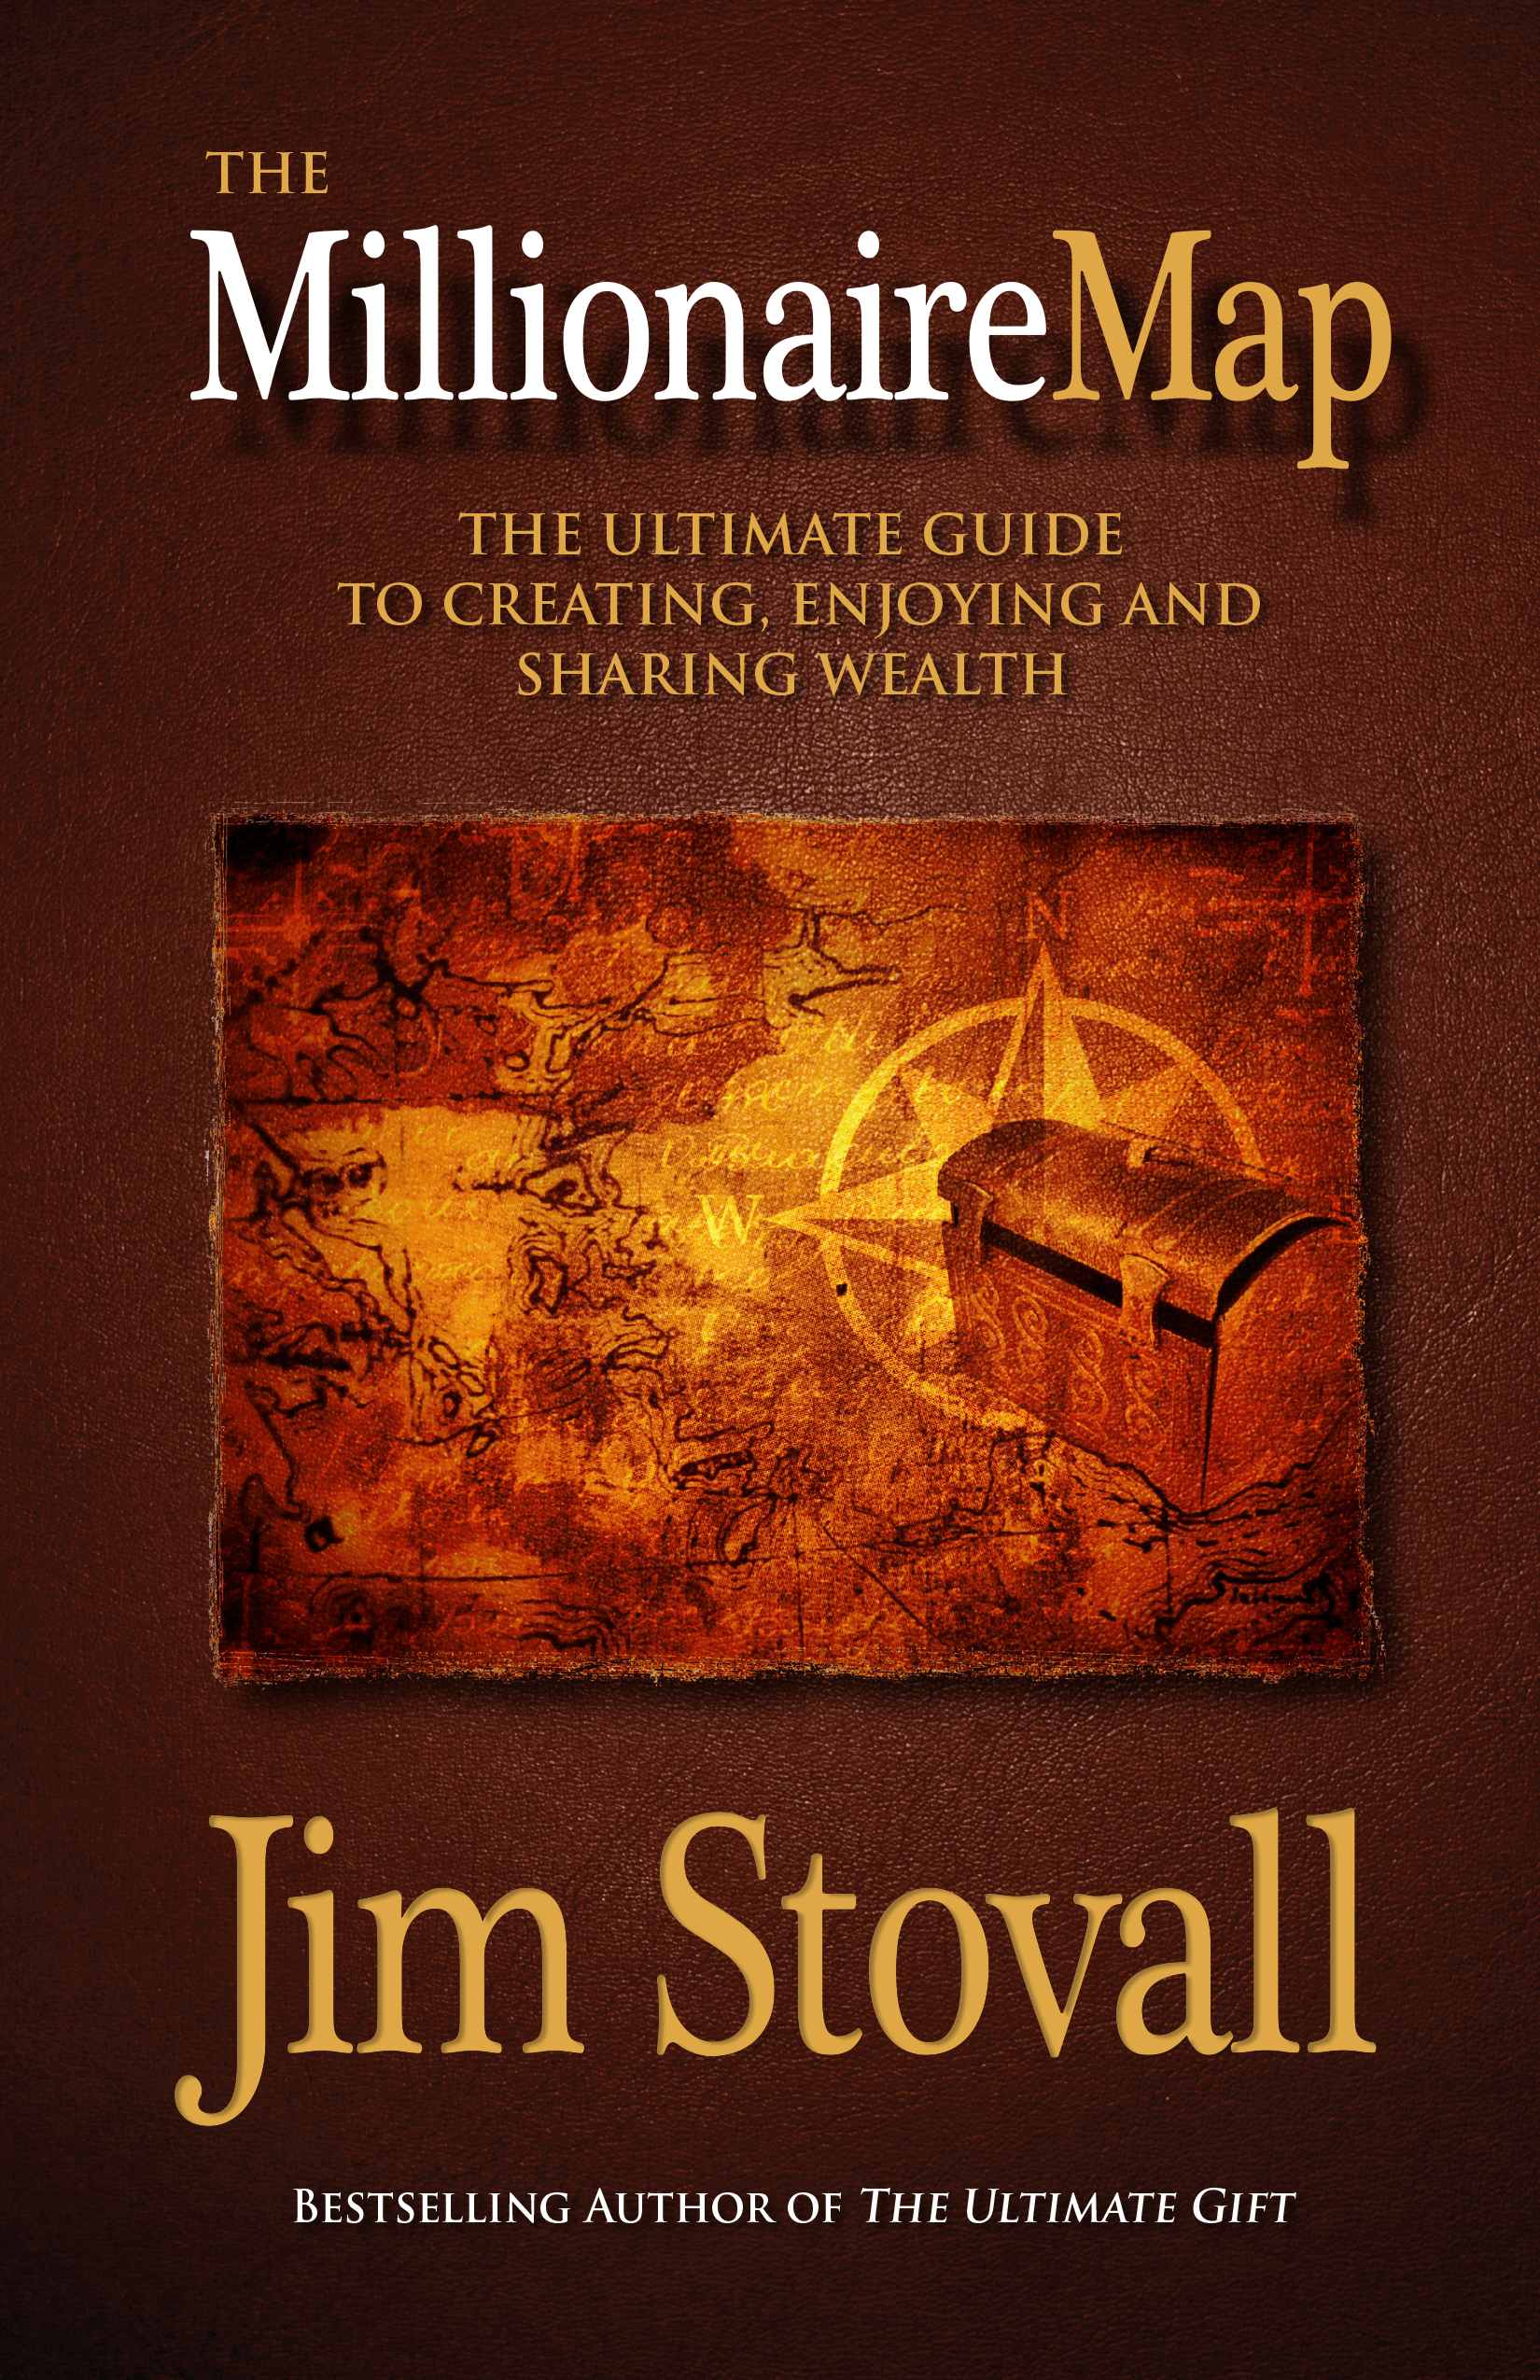 The Millionaire Map - Jim Stovall